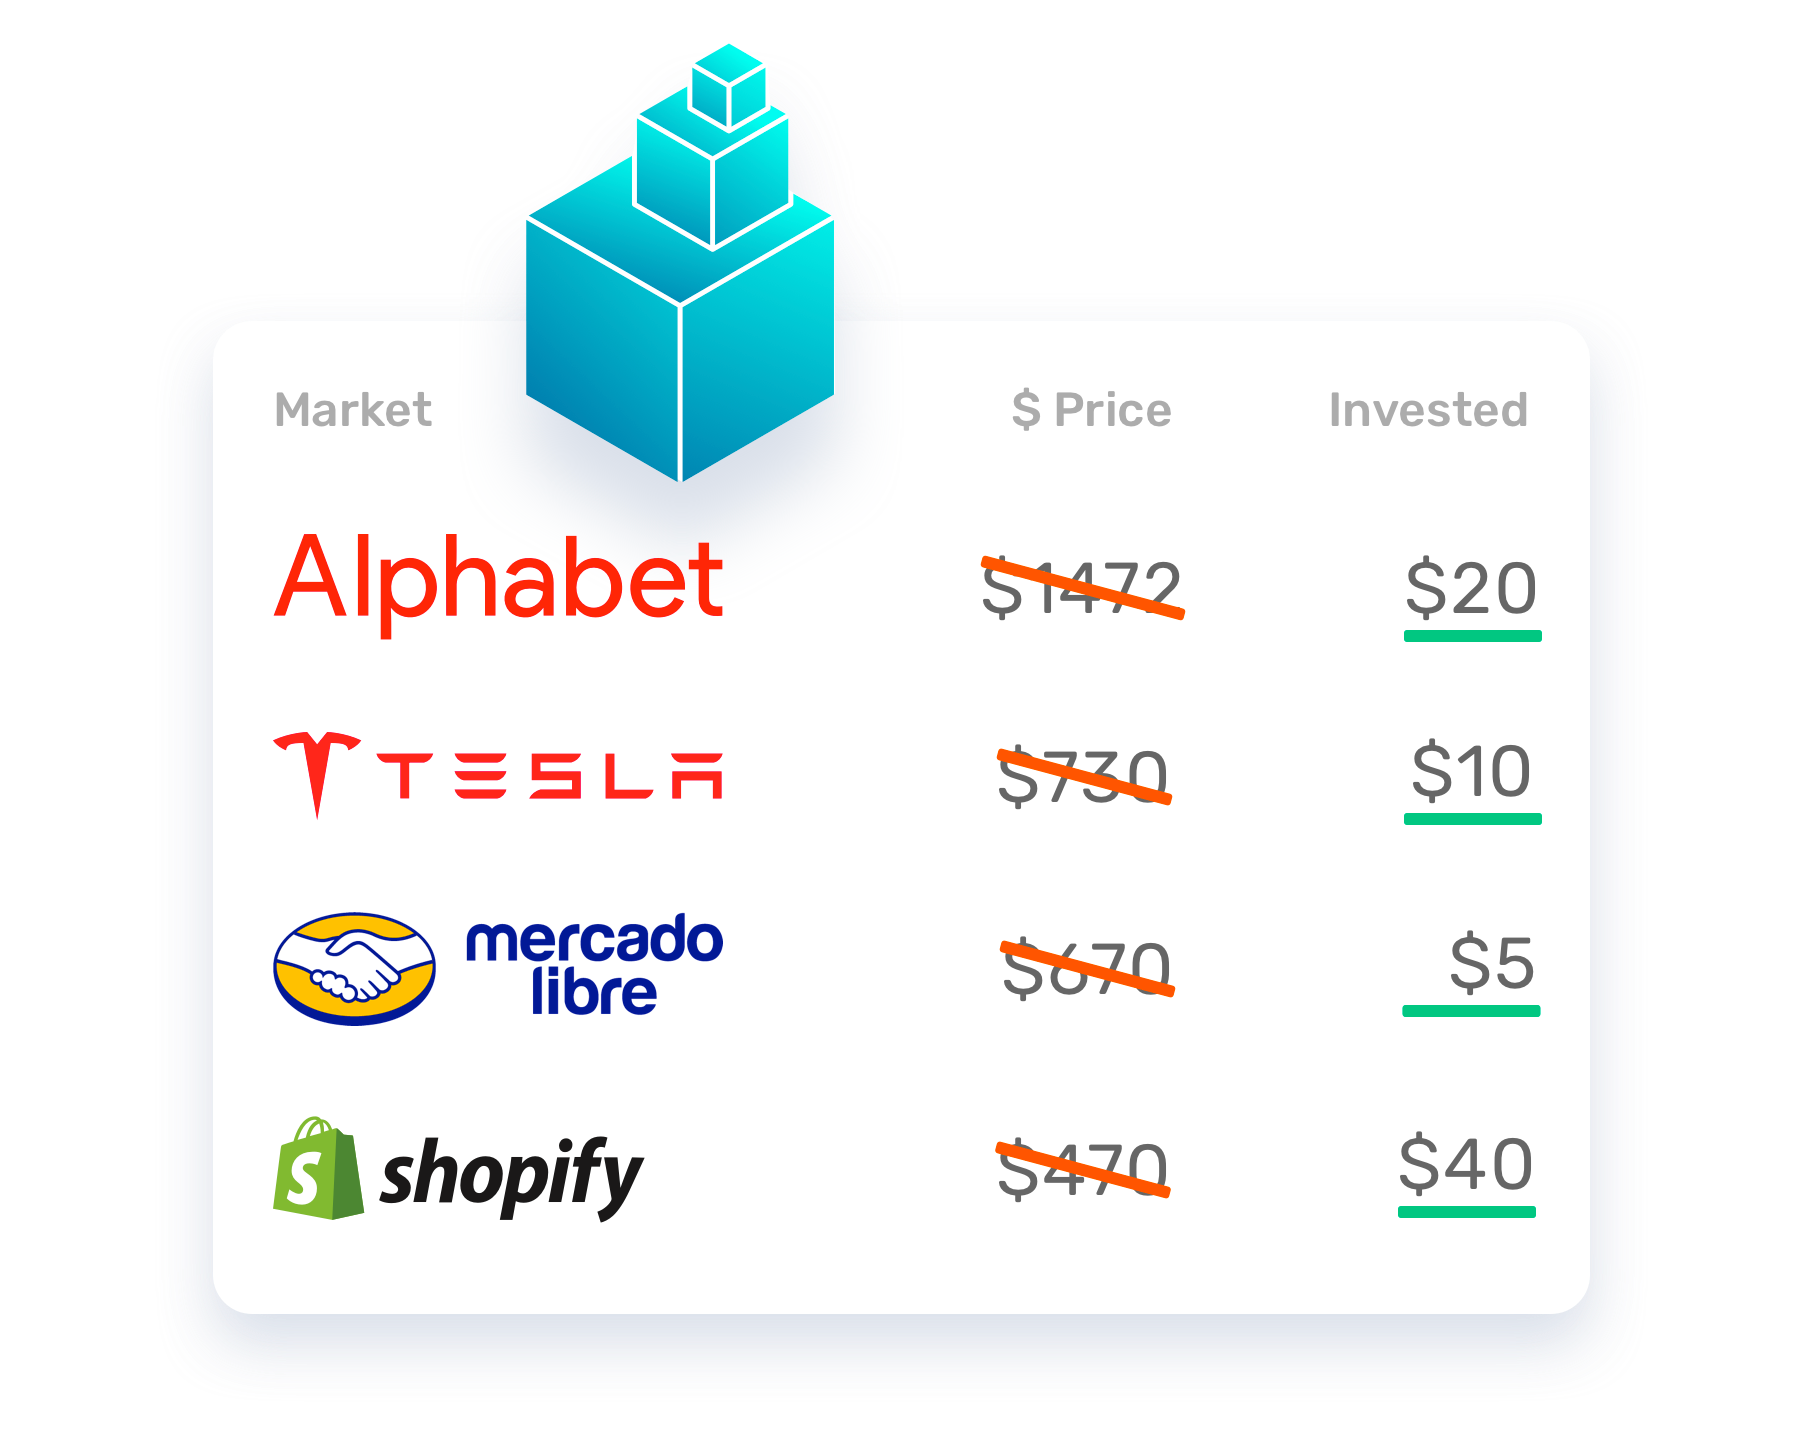 Spend a fraction of the money to buy shares in Alphabet, Tesla, Mercado Libre, or Shopify.